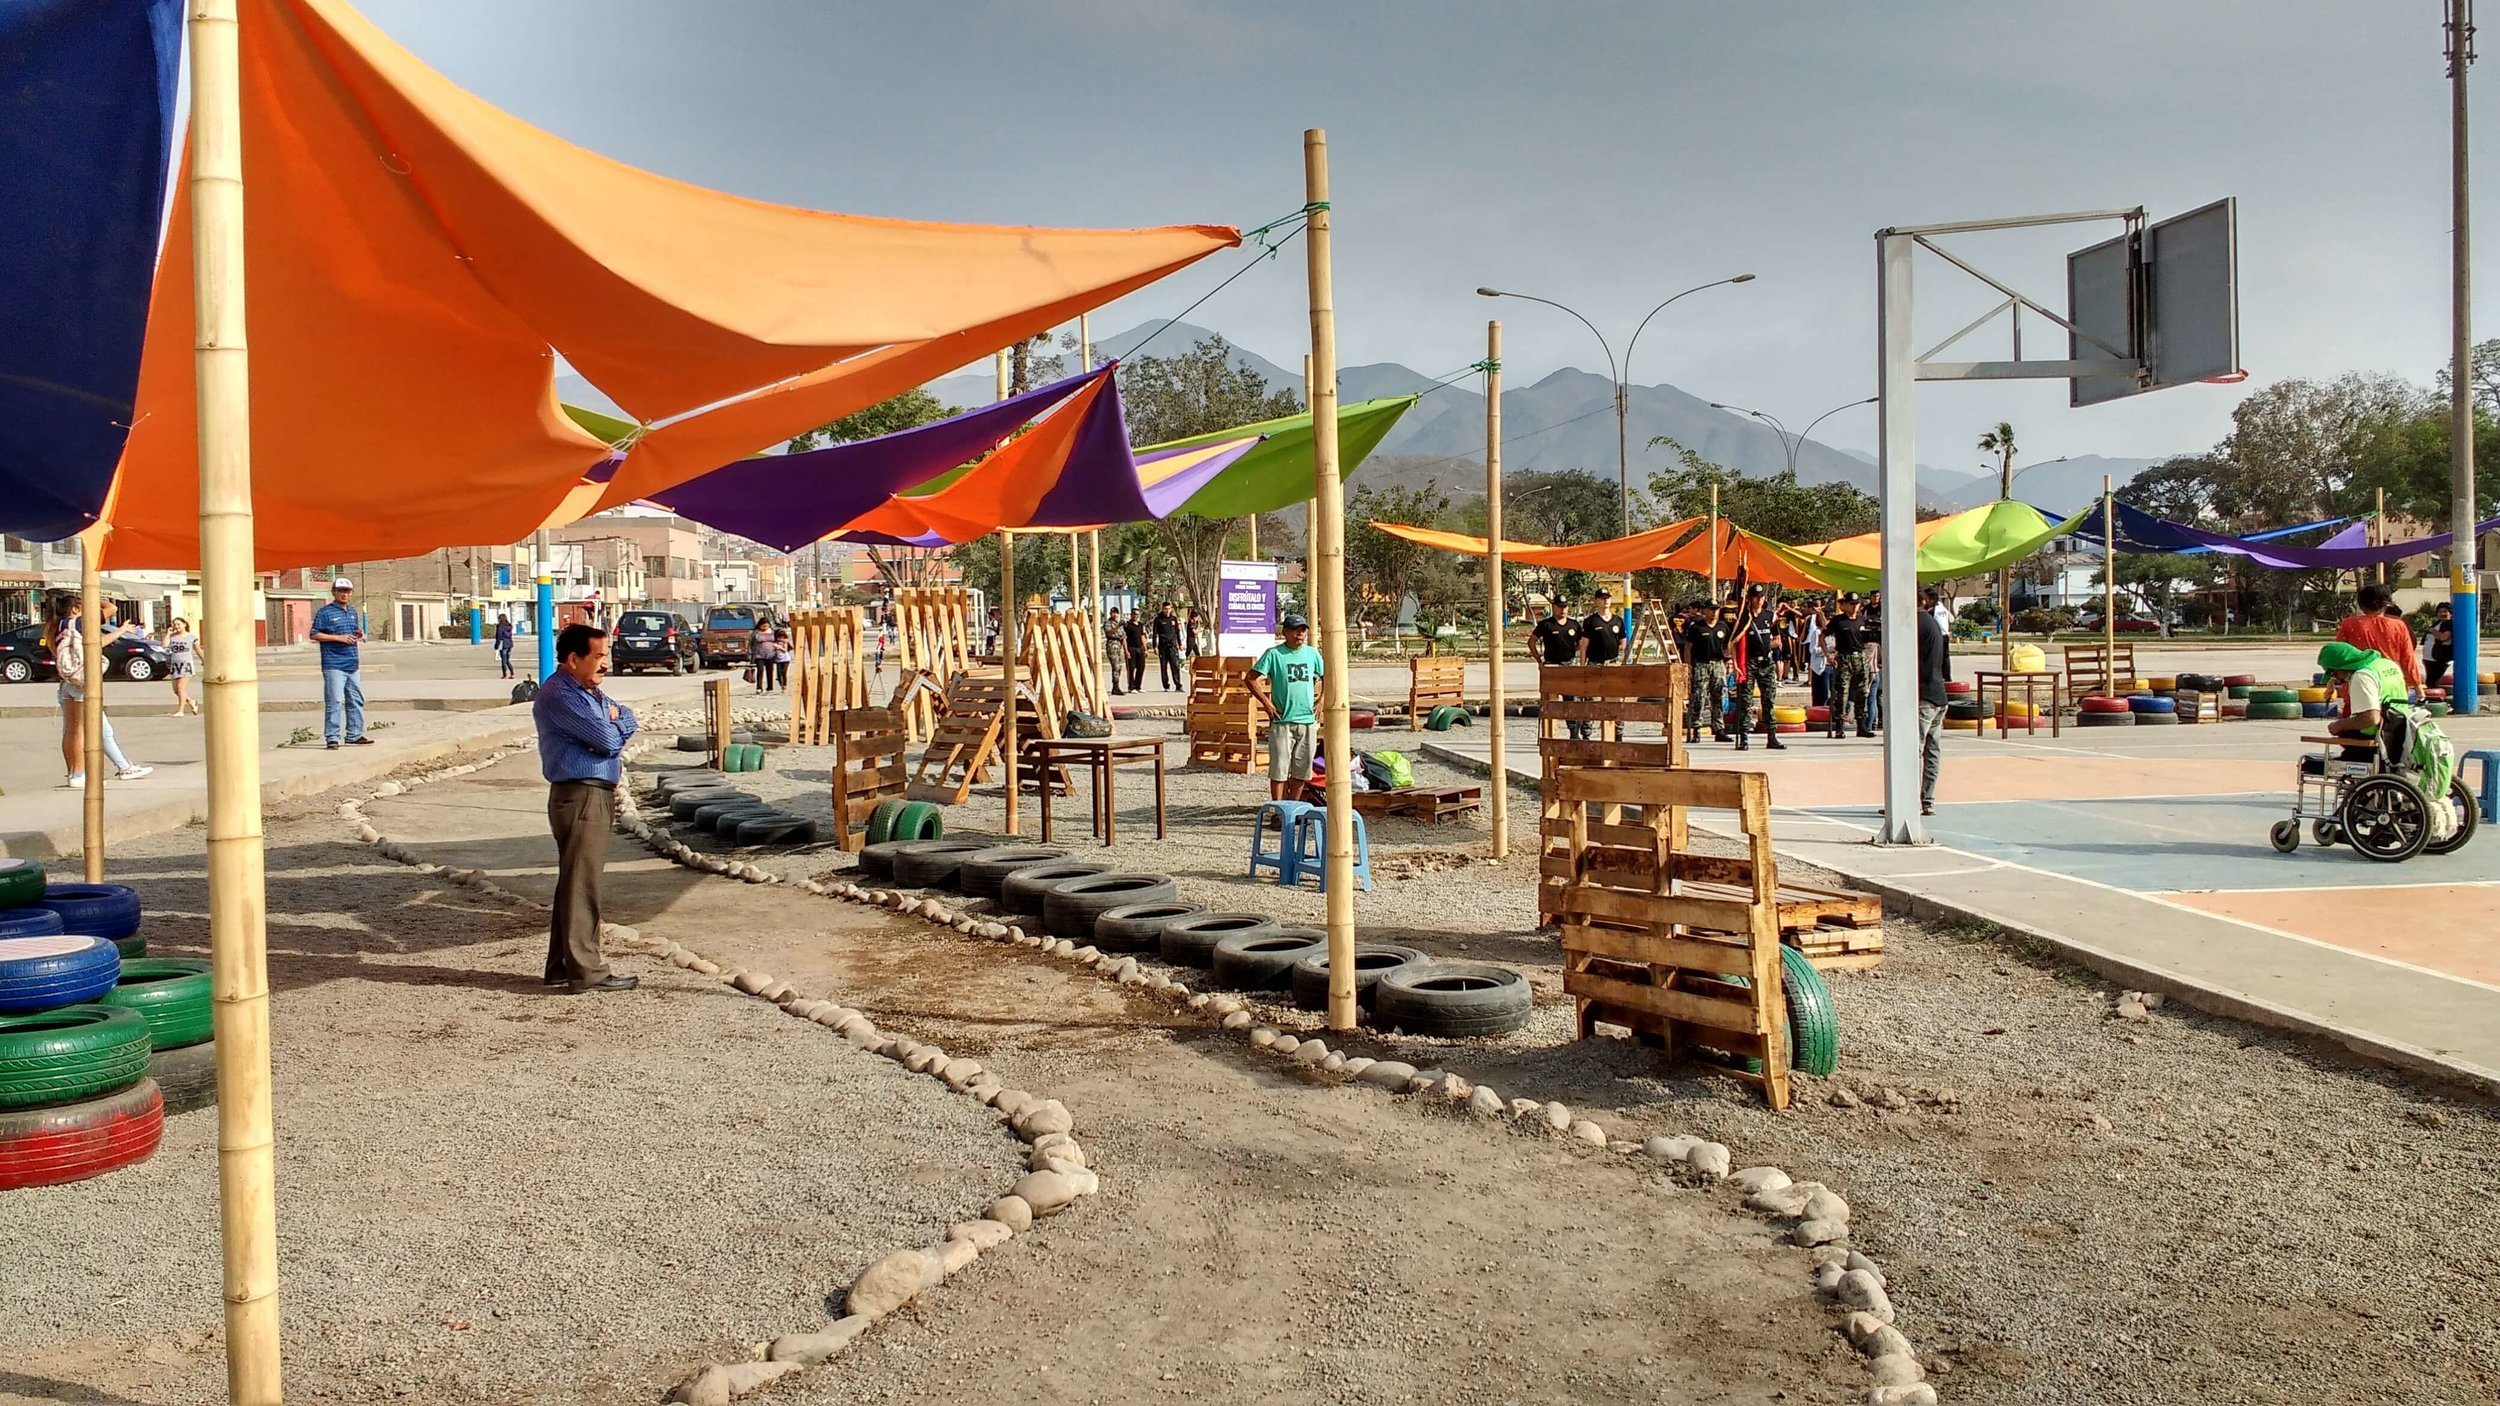 Public space micro-intervention, Parque Manhattan, Lima Credit: Diego Vivas